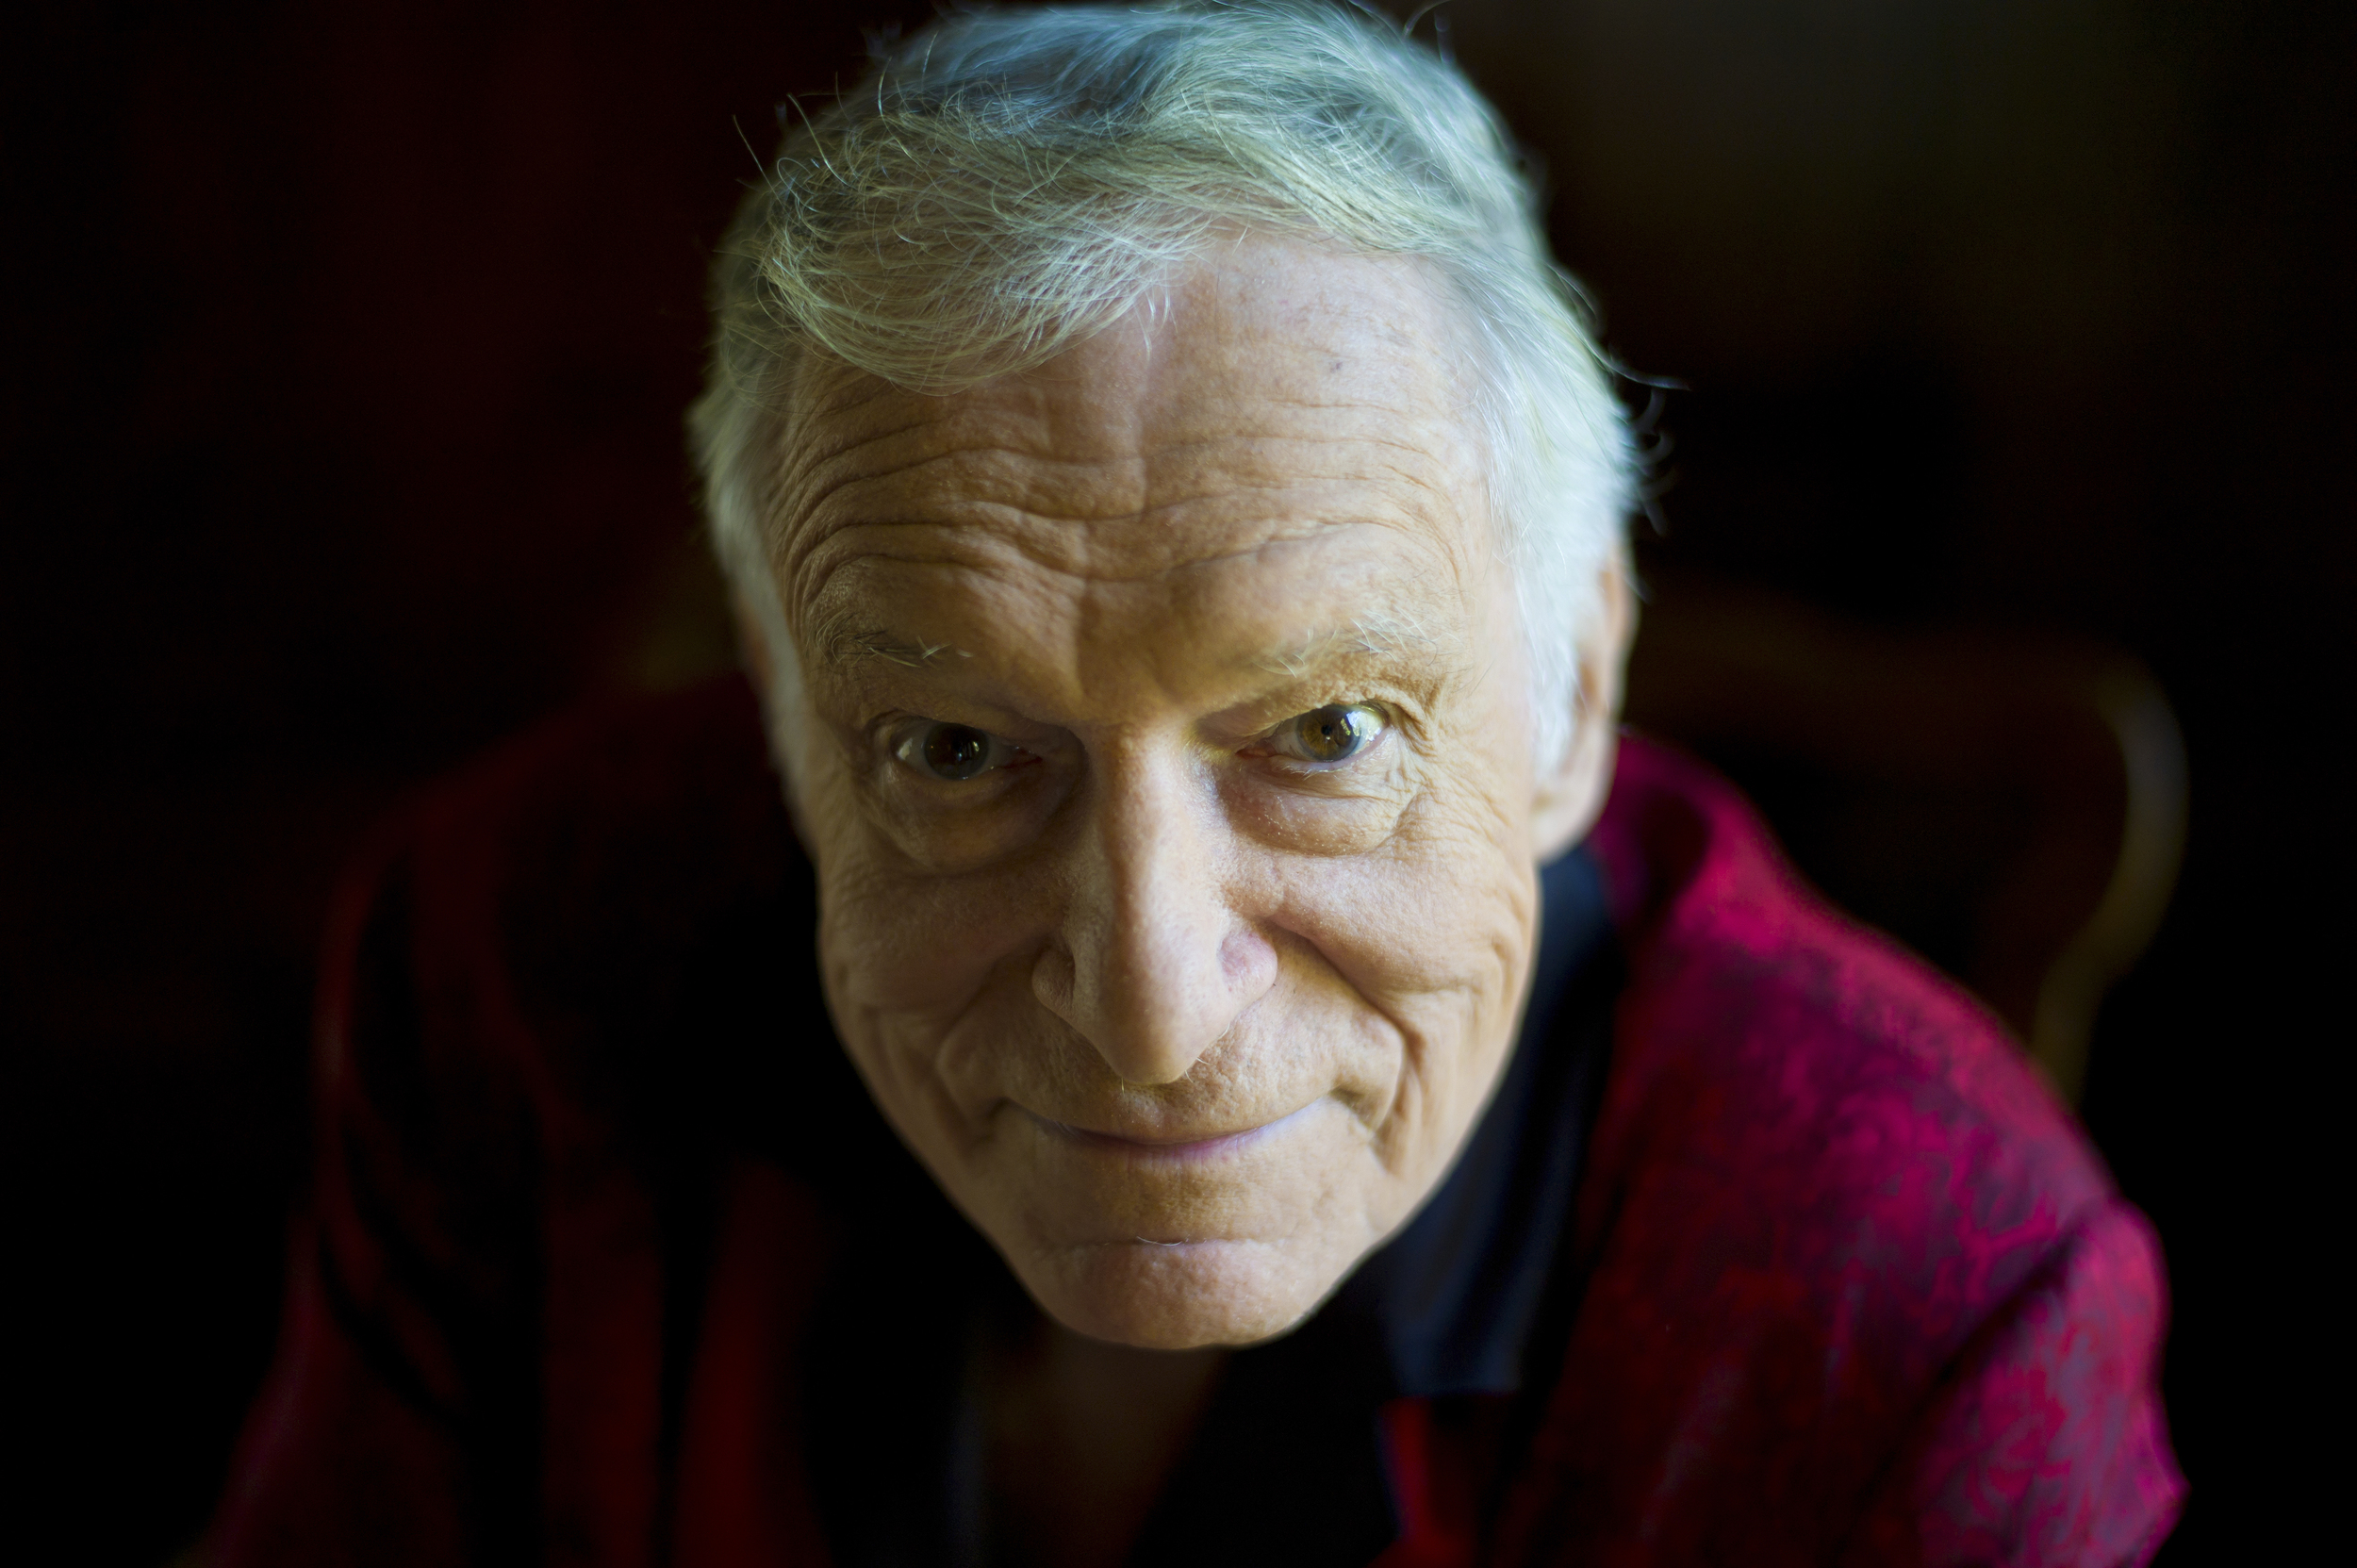 In this Oct. 13, 2011 file photo, American magazine publisher, founder and Chief Creative Officer of Playboy Enterprises, Hugh Hefner at his home (aka Playboy Mansion) in Beverly Hills, Calif. Playboy will no longer publish photos of nude women as part of a redesign of the decades-old magazine, according to a news report Monday, Oct. 12, 2015. (Kristian Dowling, File/AP)